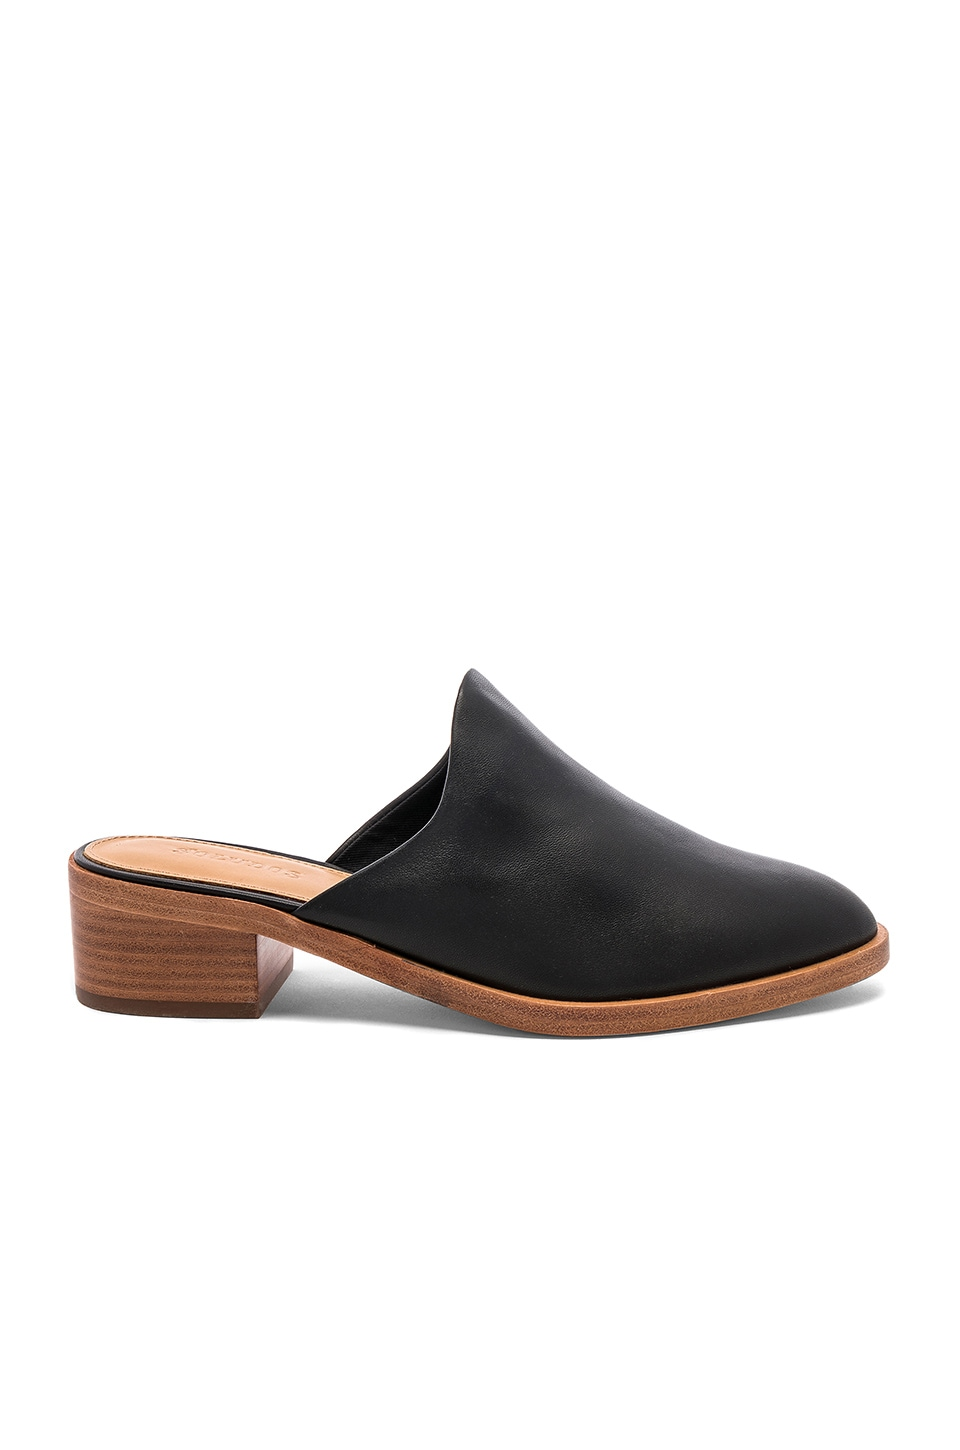 Soludos Venetian Mule in Black